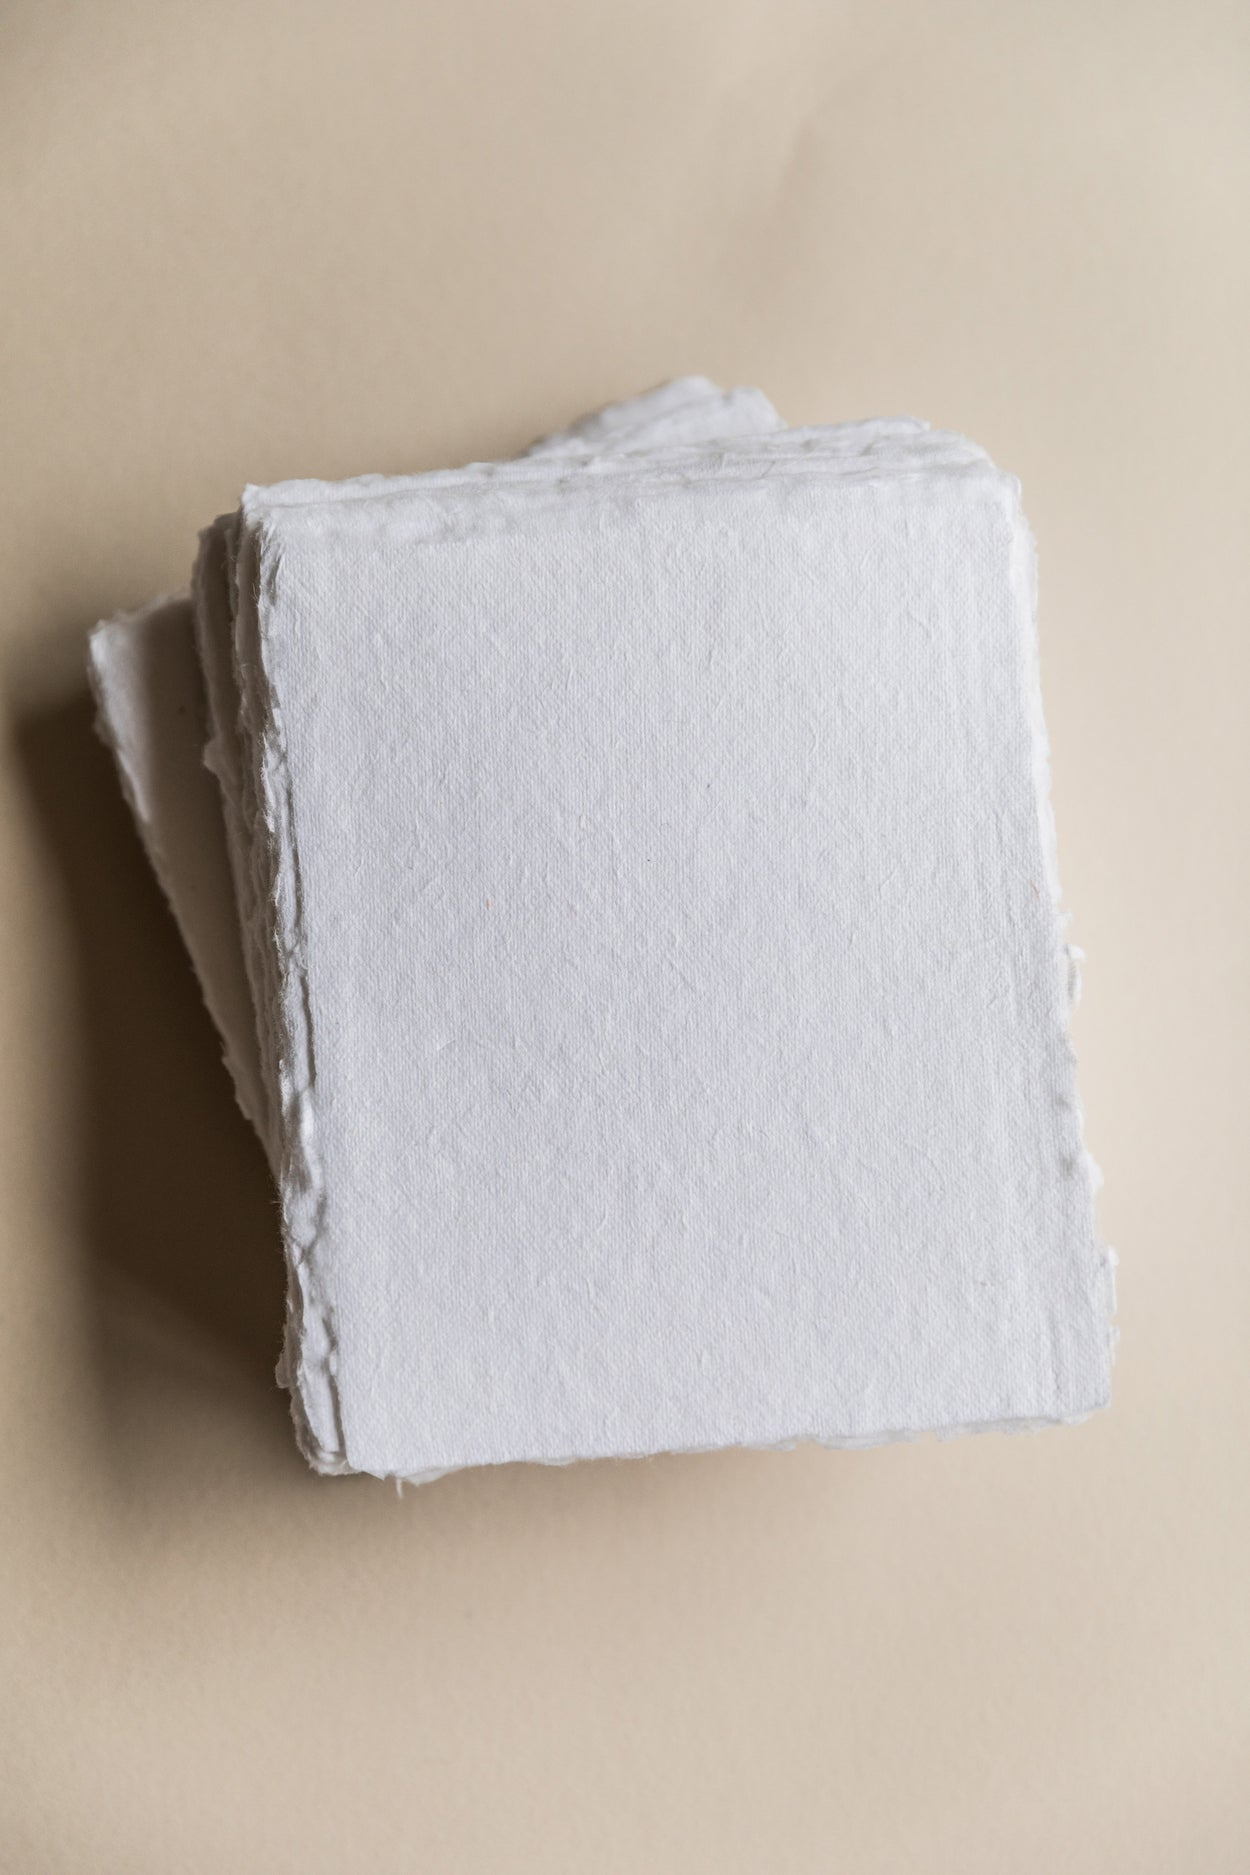 White deckle-edge cotton rag paper